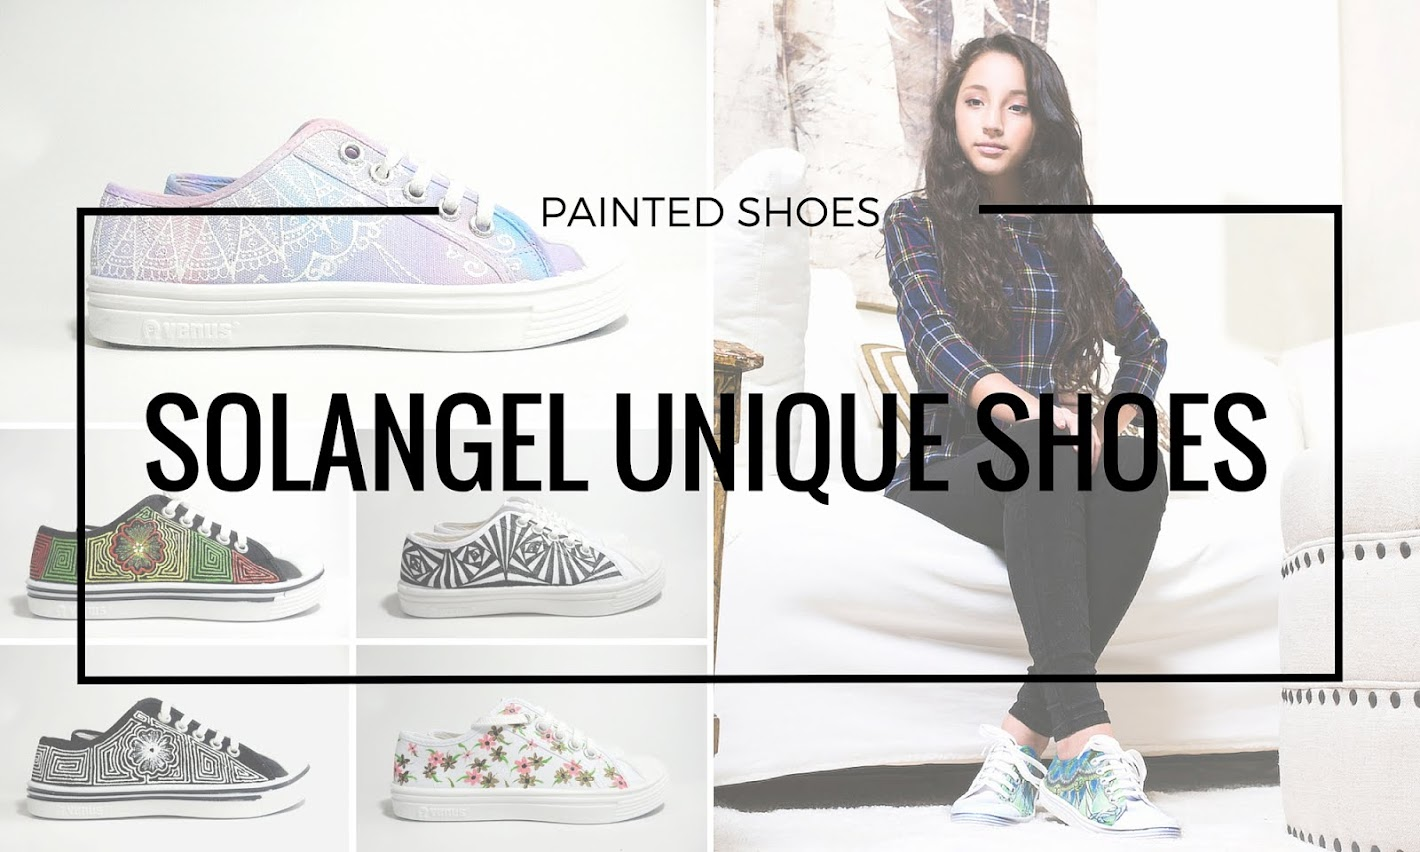 Solangel Unique Shoes